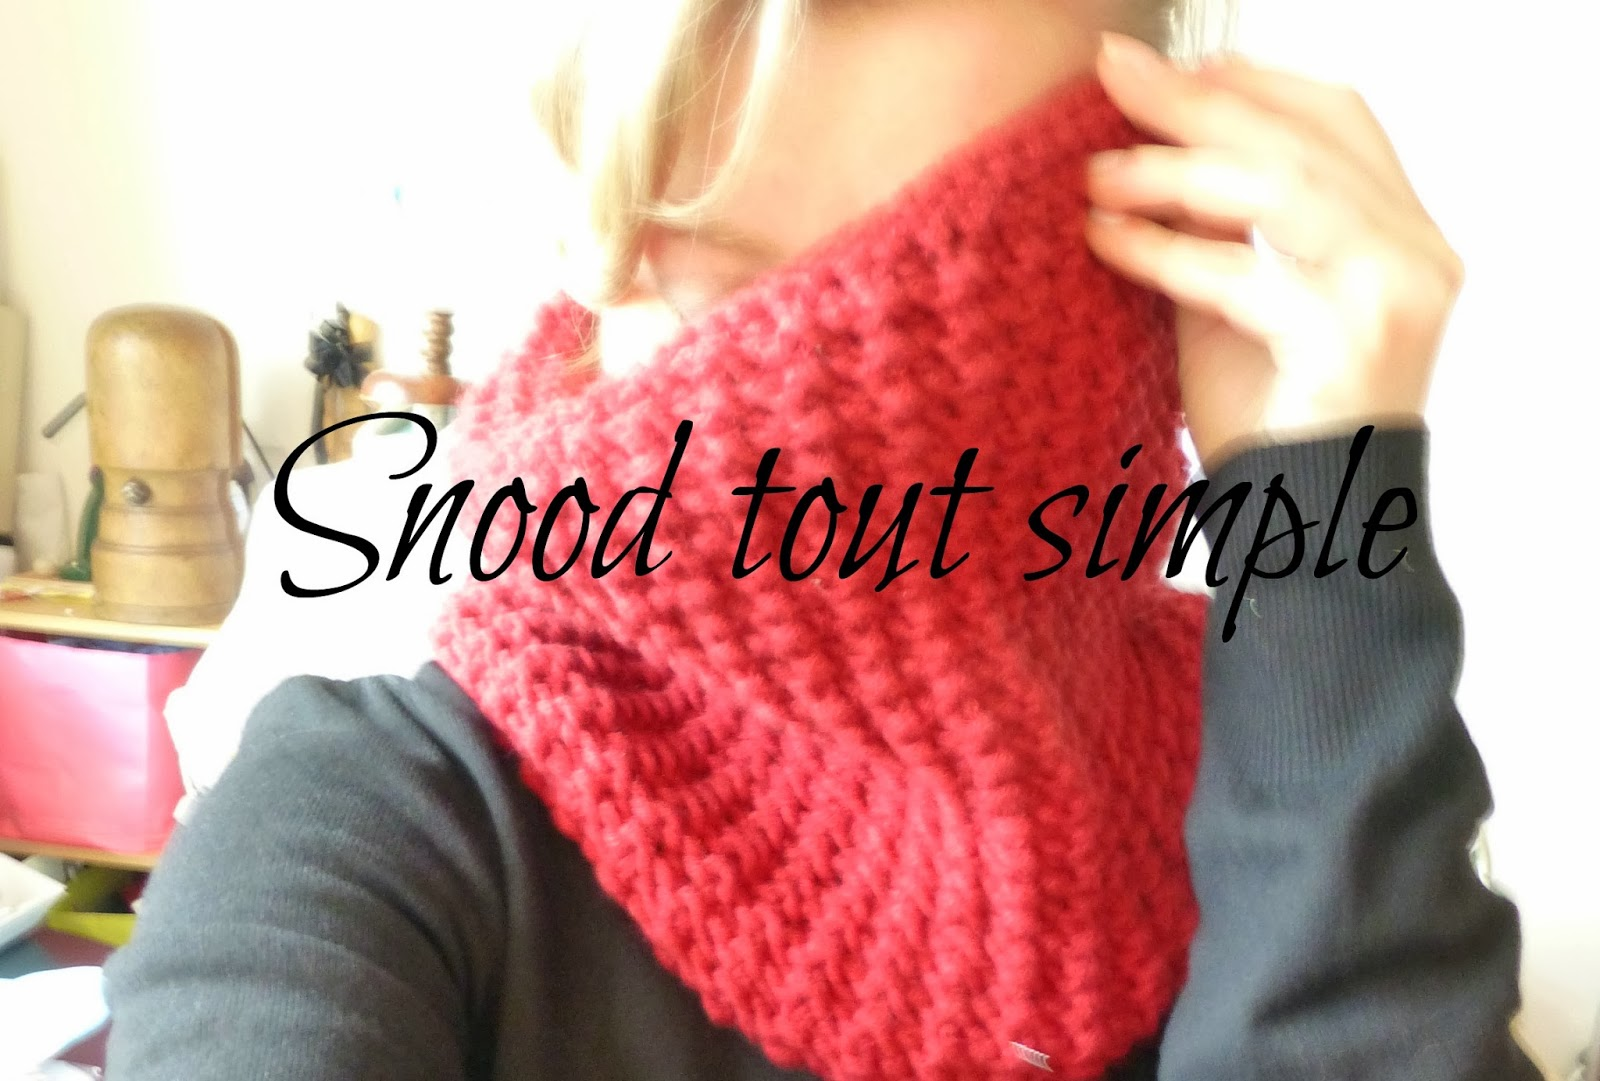 Snood tout simple pour affronter le vent